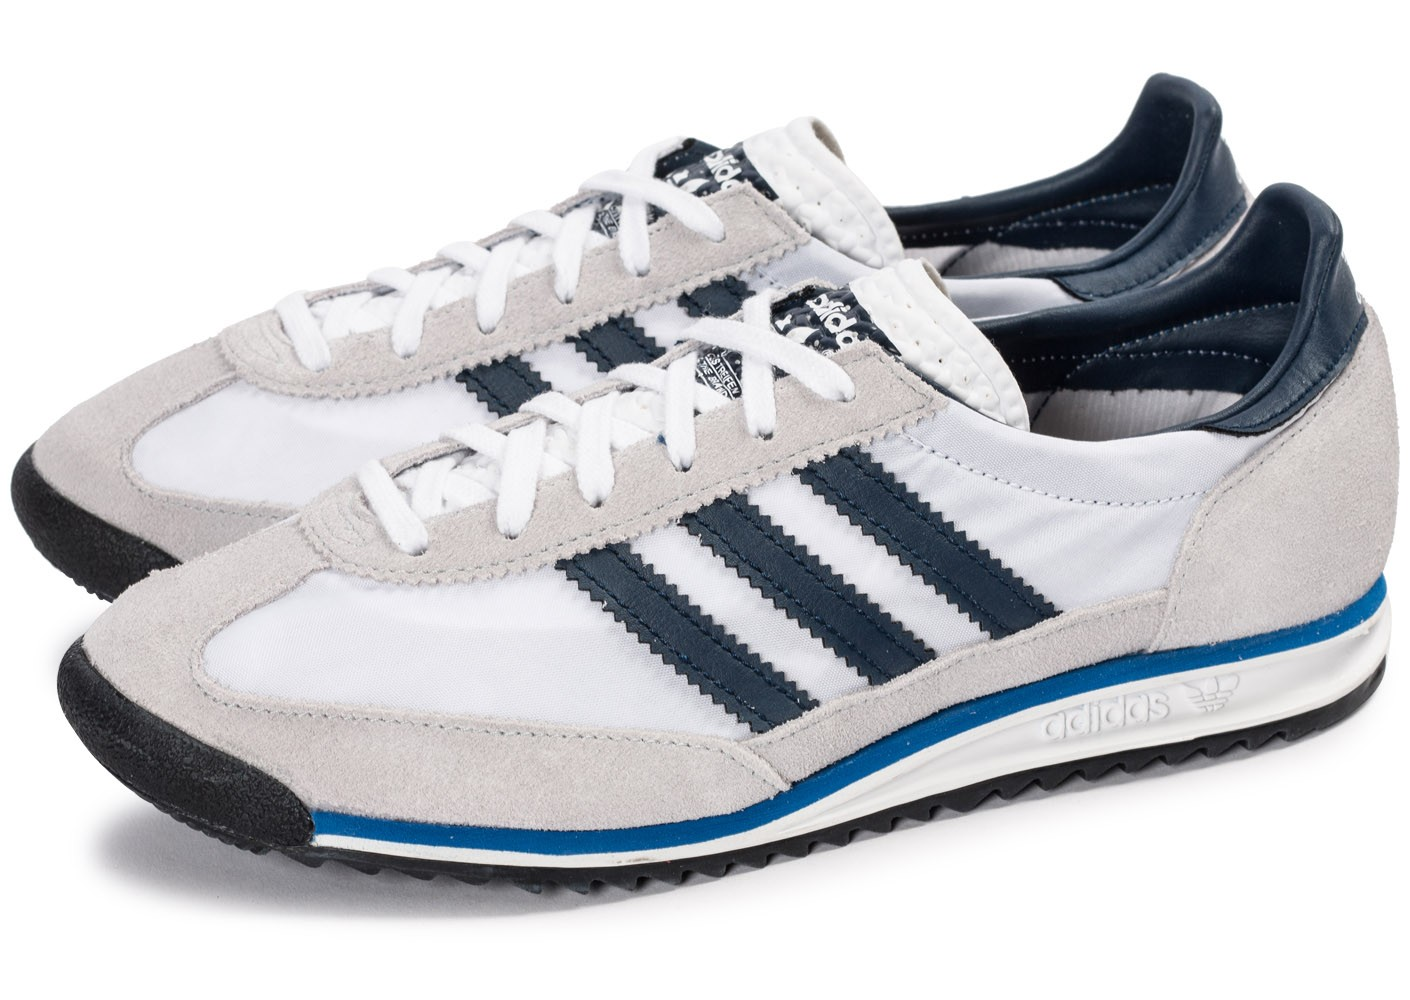 adidas chaussures ventage